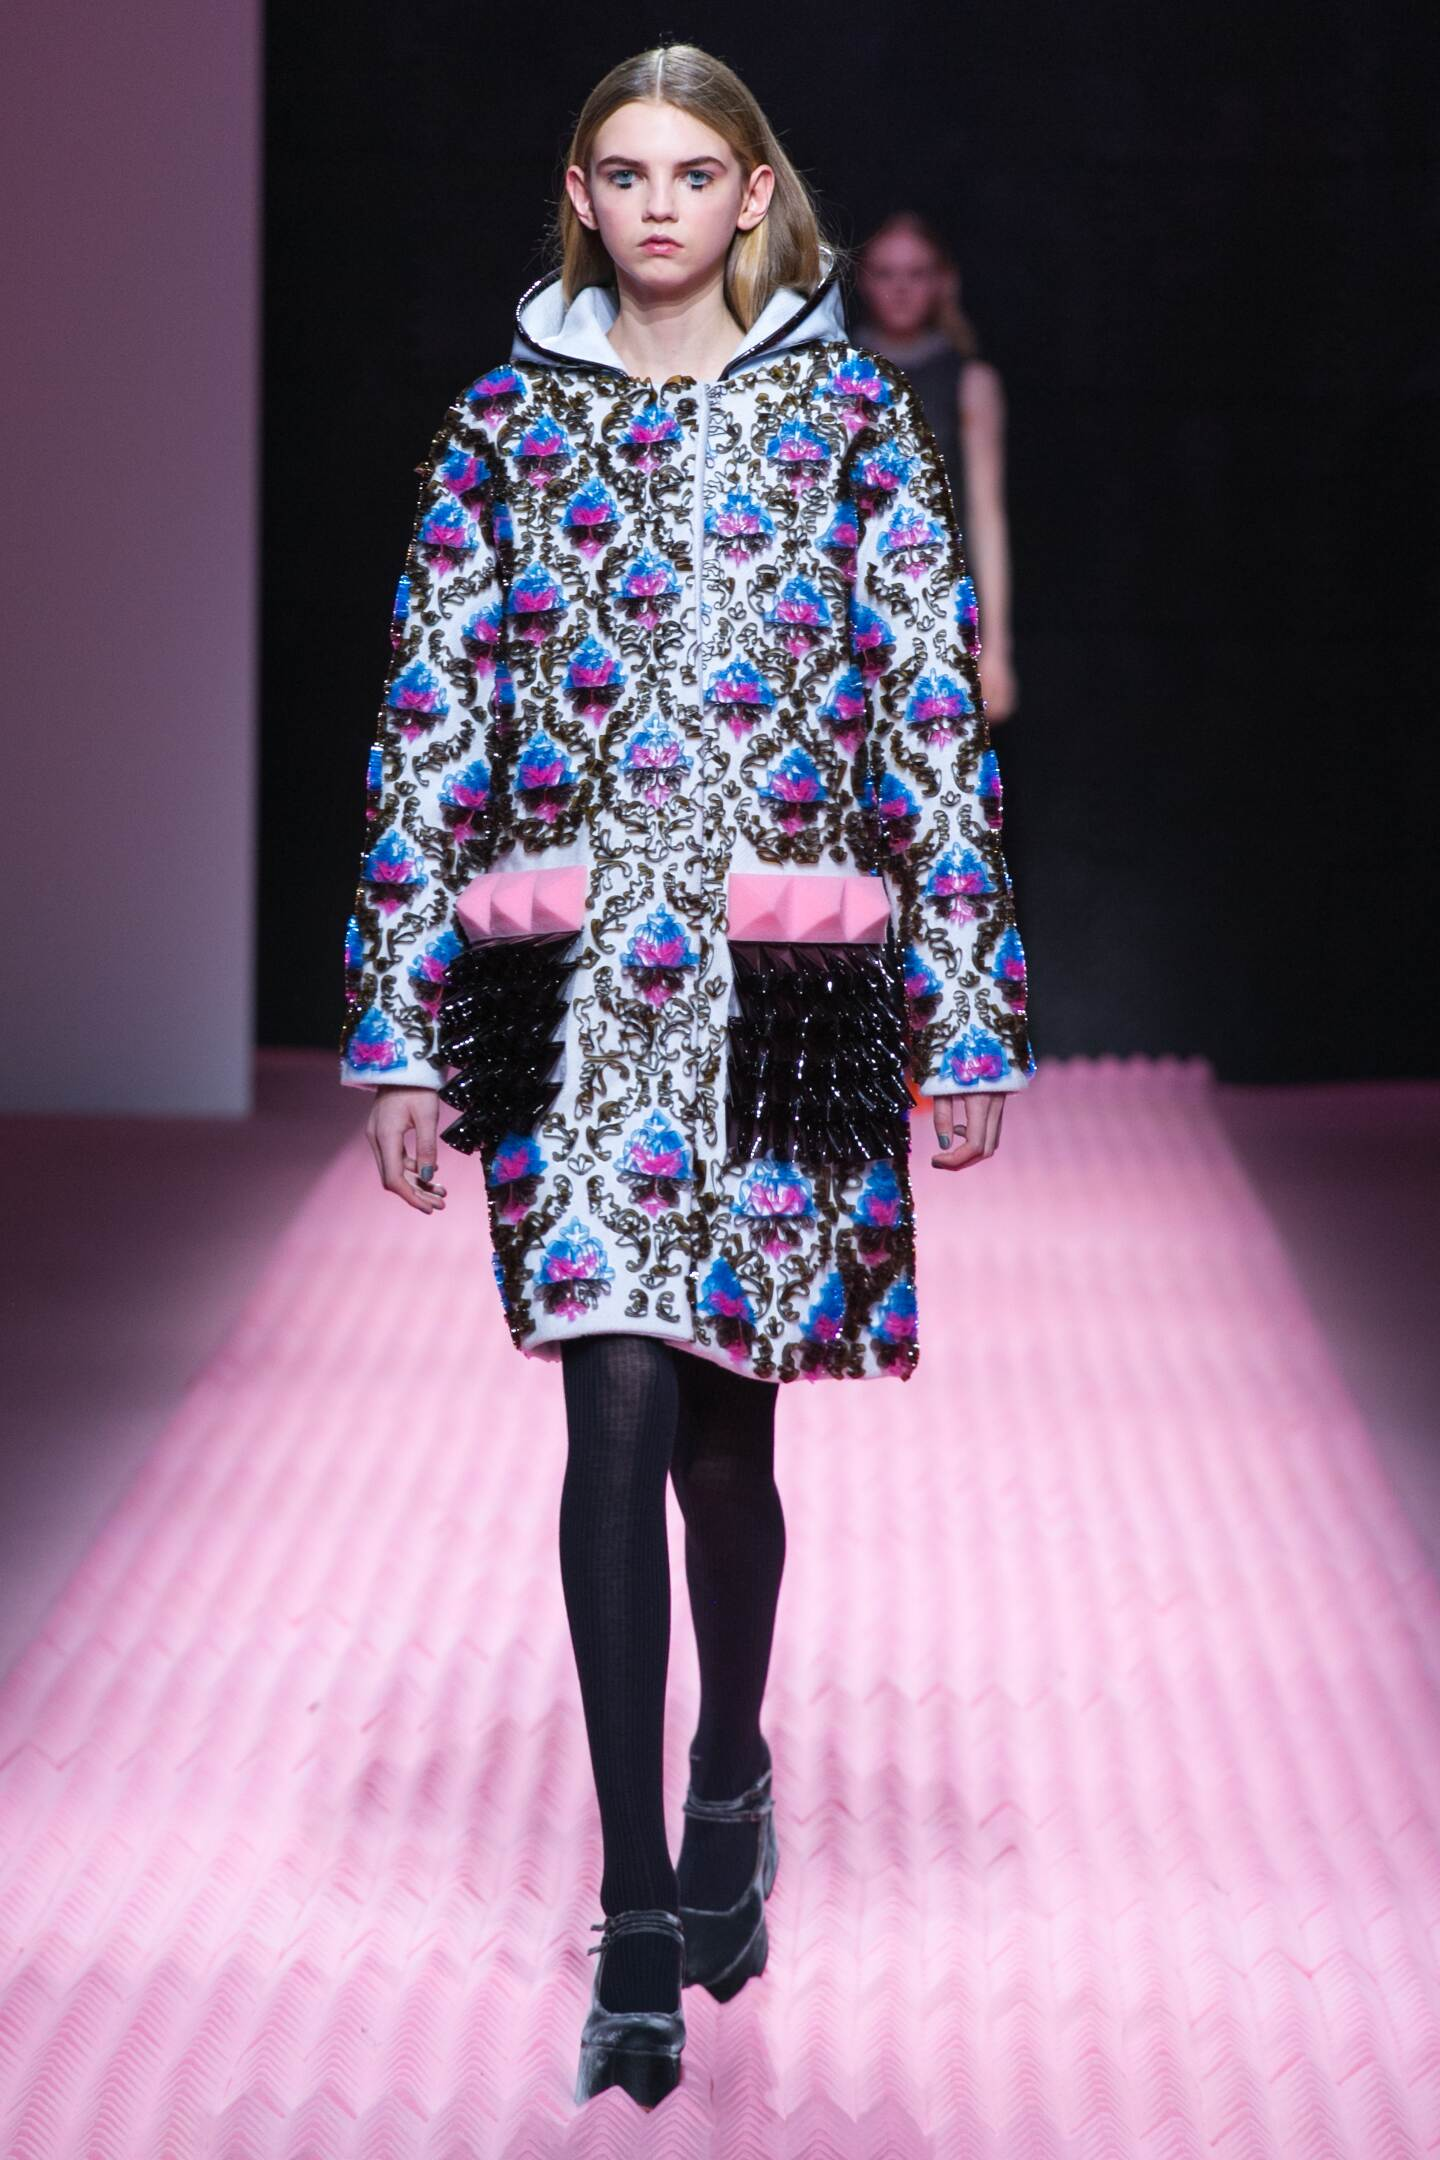 Fall Mary Katrantzou Collection Fashion Women Model